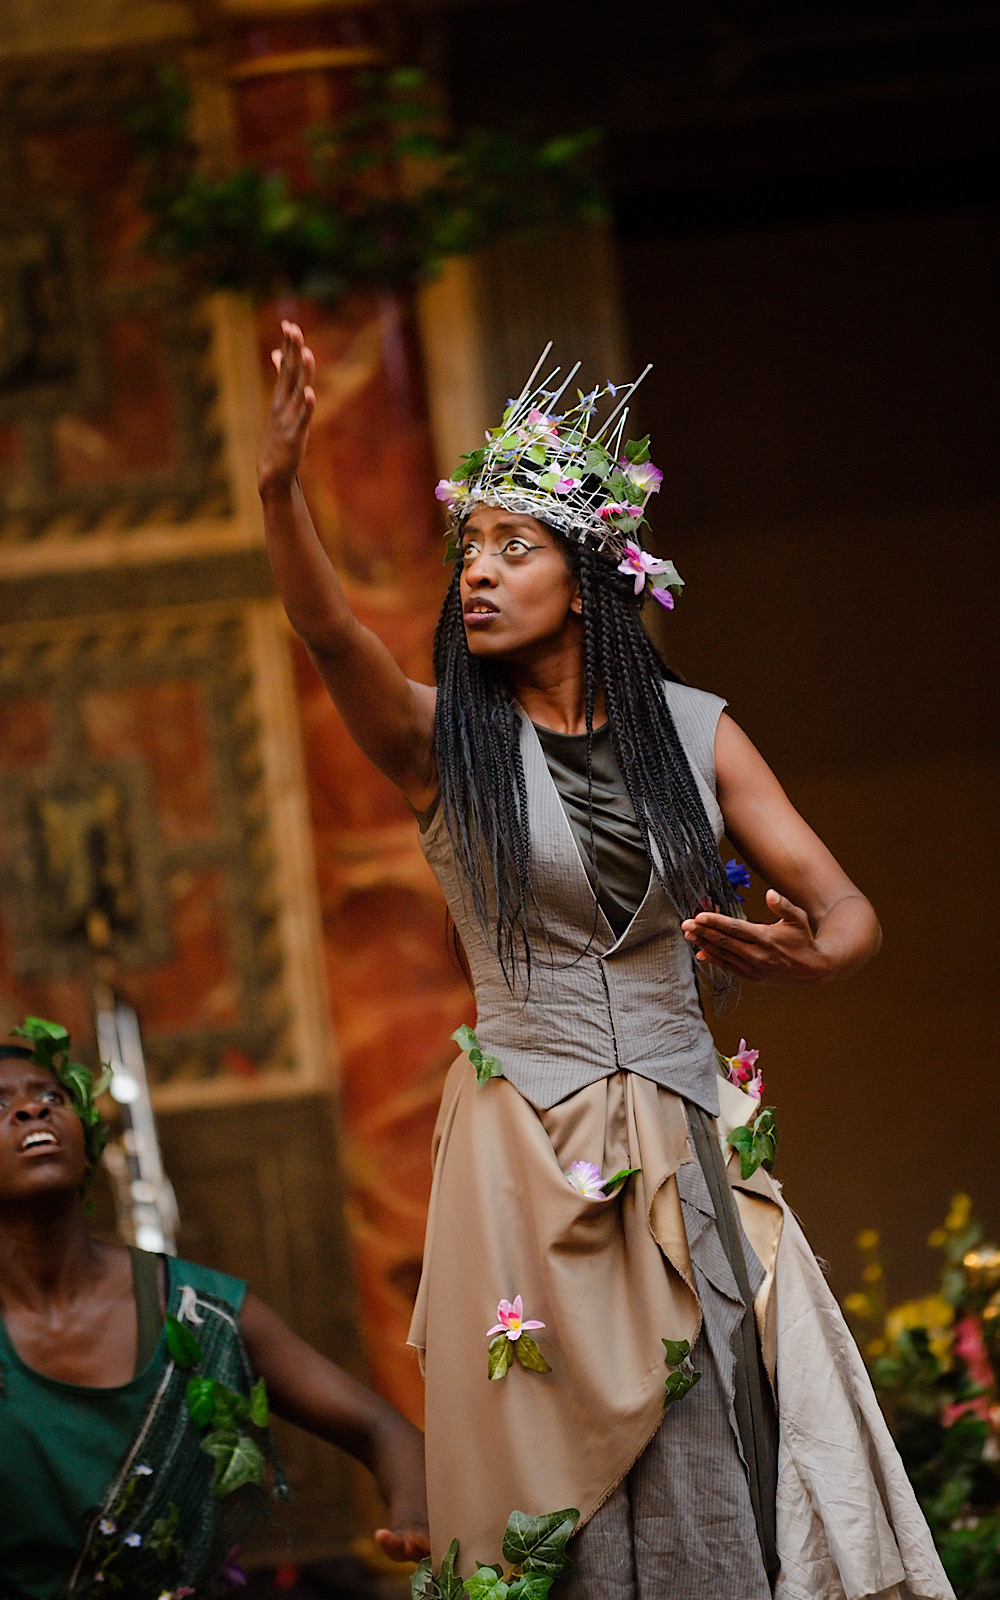 An actor performs on stage wearing a crown of flowers, with one arm lifted in the air